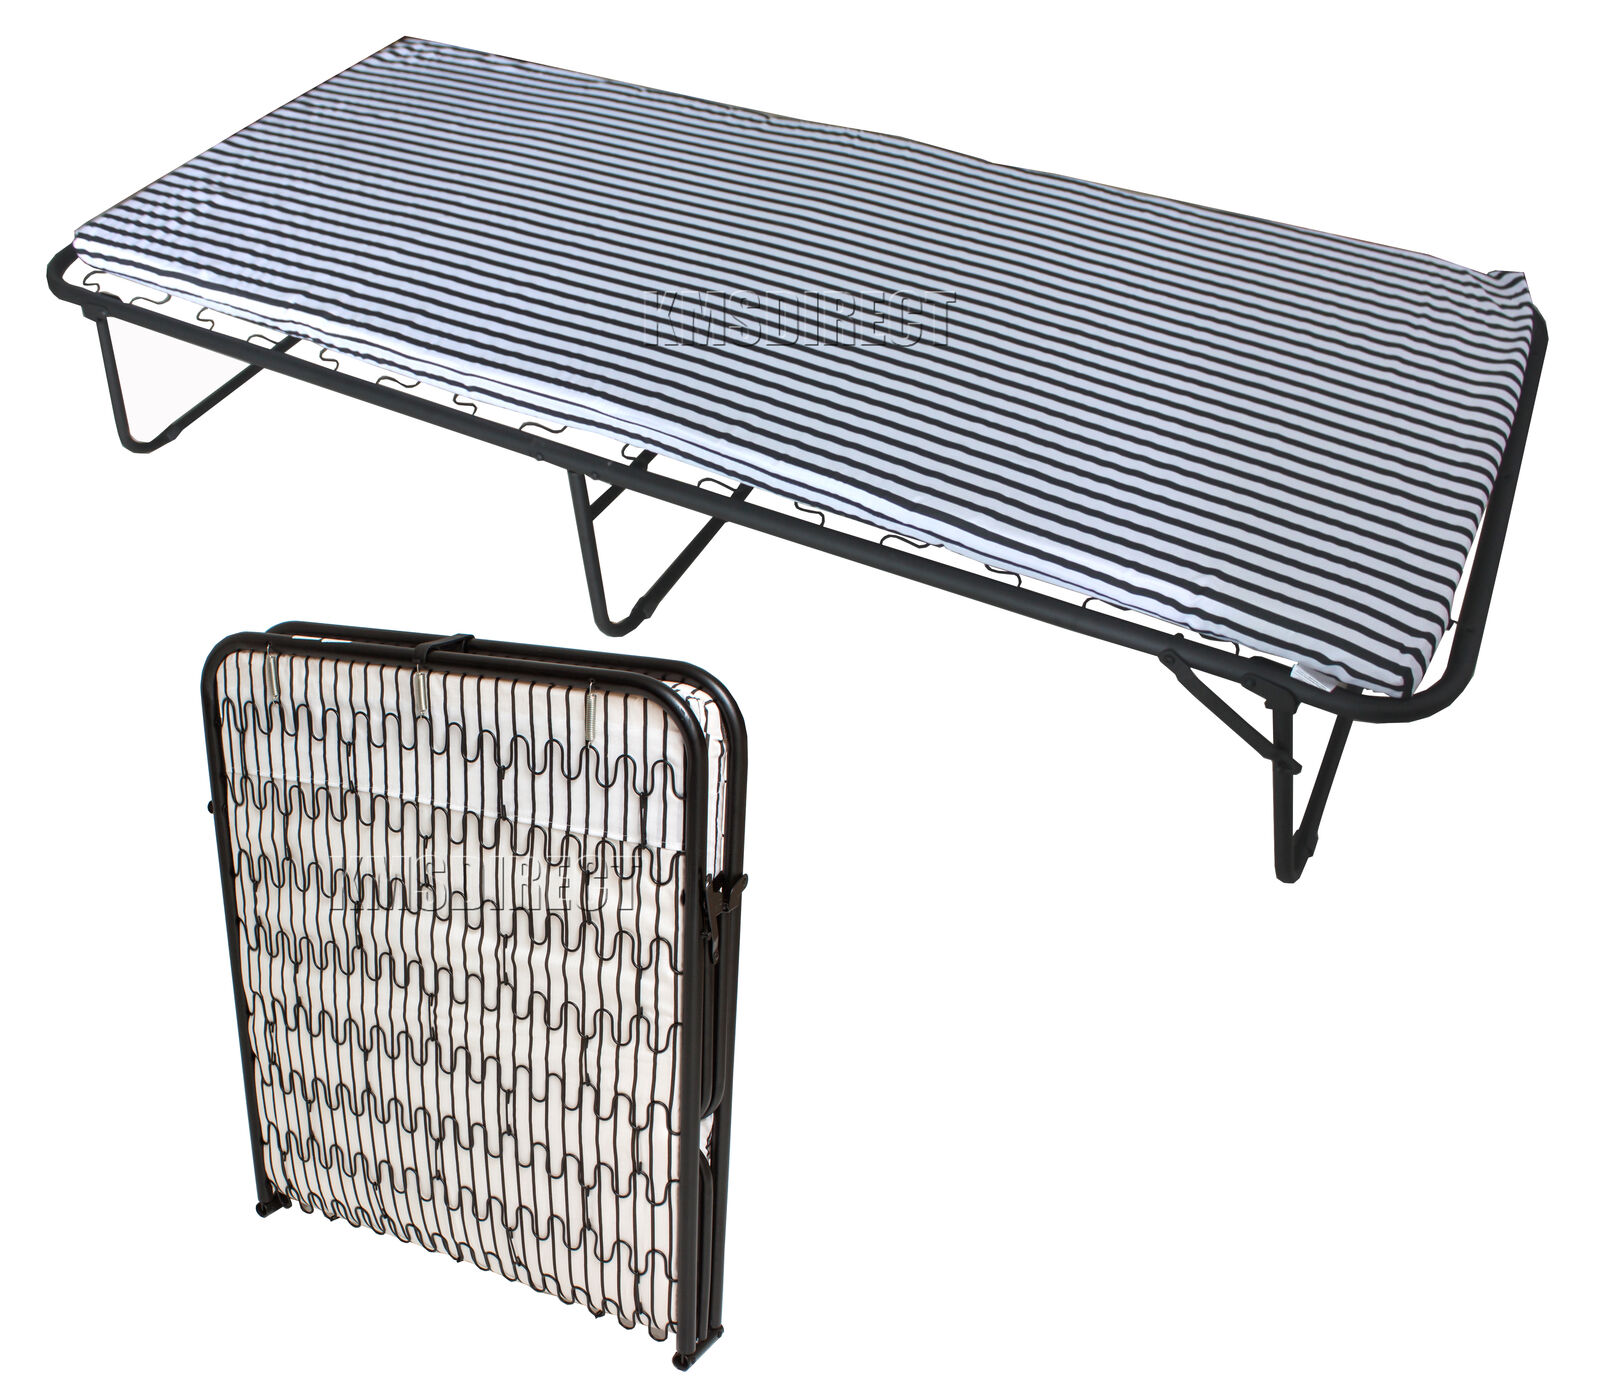 folding chair beds canada fred meyer chairs foxhunter metal single guest visitor compact bed